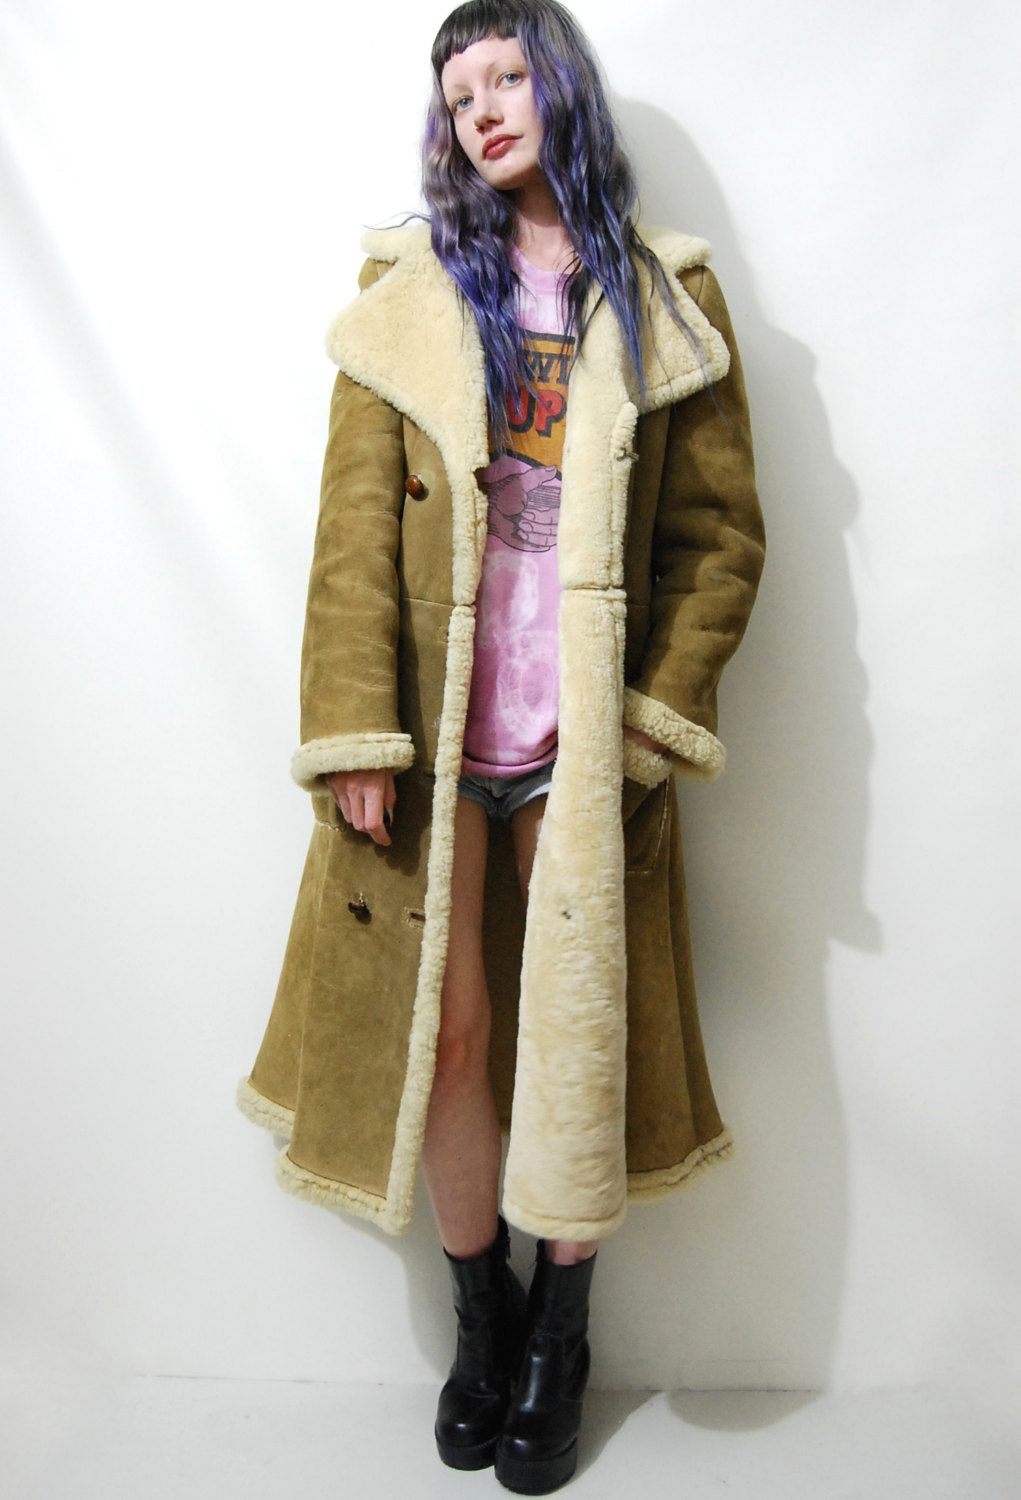 Vtg 70s Hungarian Kalocsai Shearling Sheepskin Long Fur Coat 10/12 ...